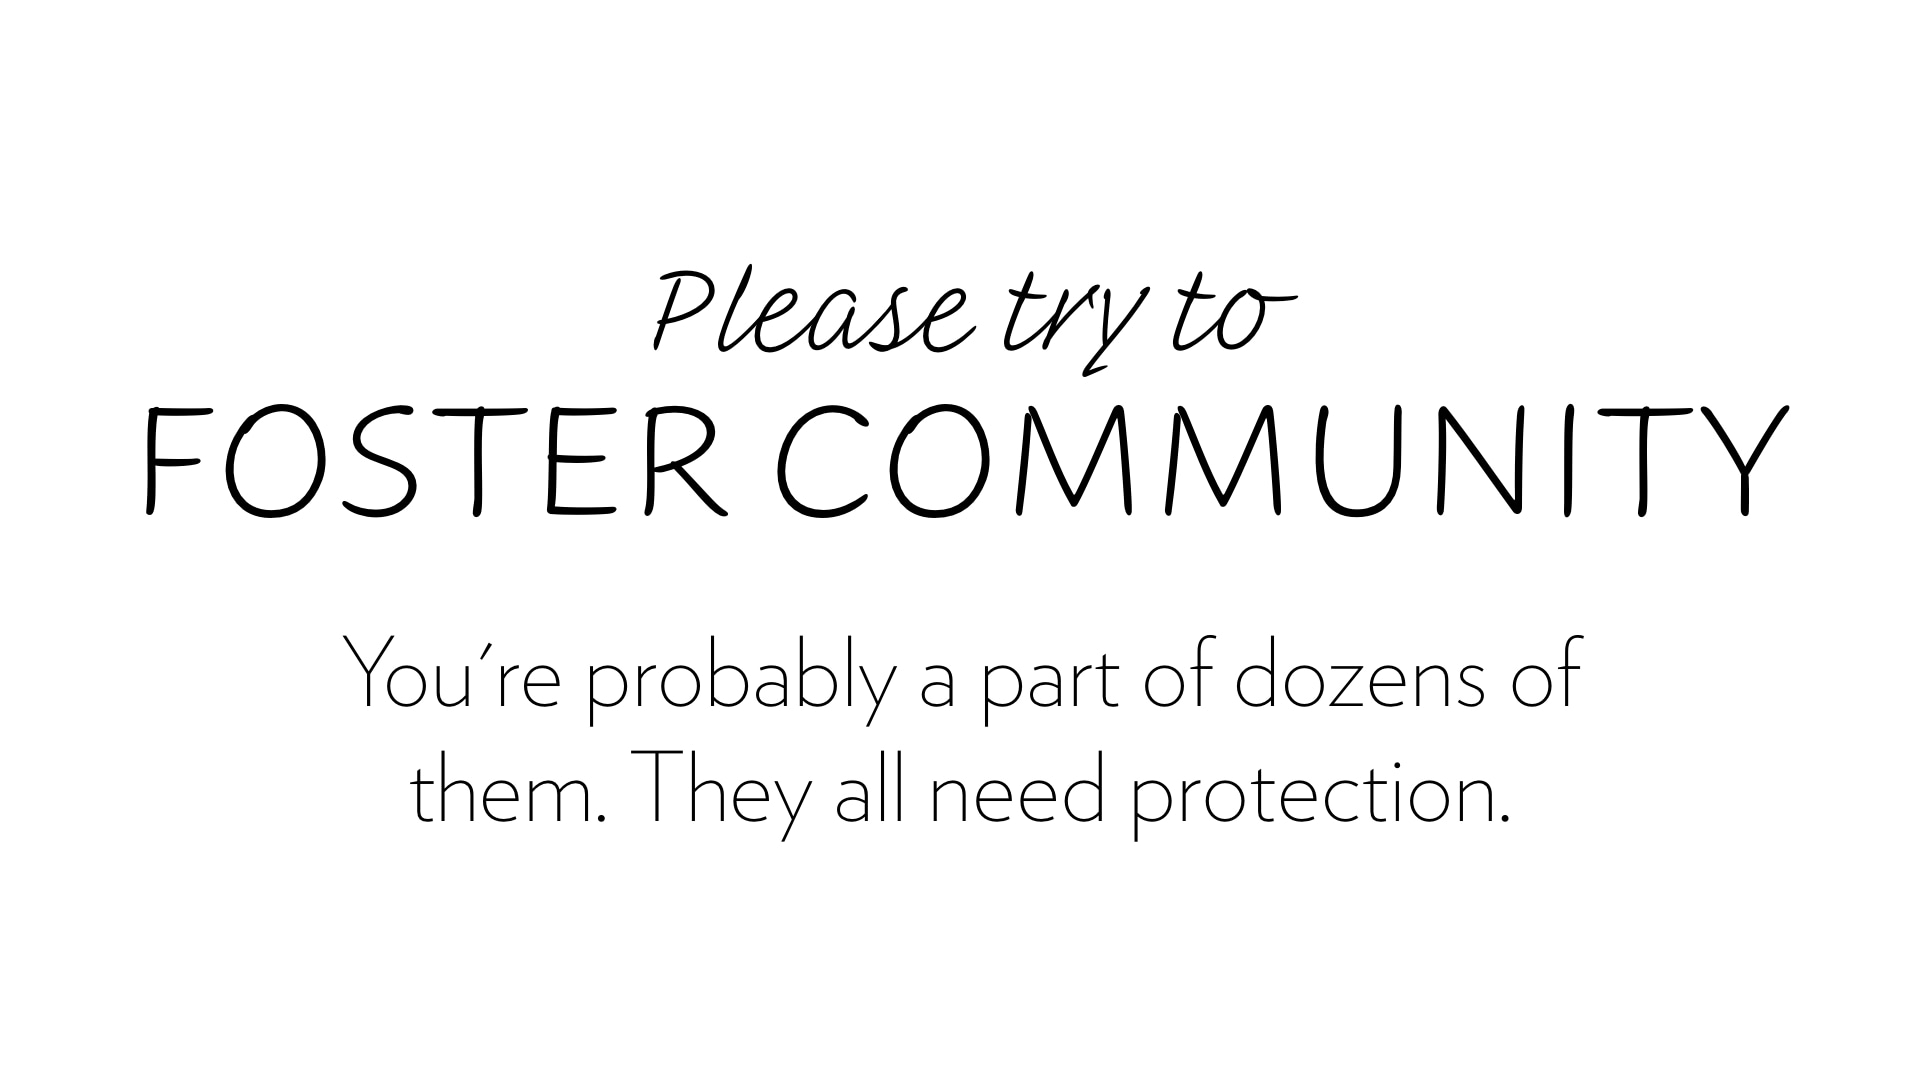 Please try to foster community. They all need your help and protection.